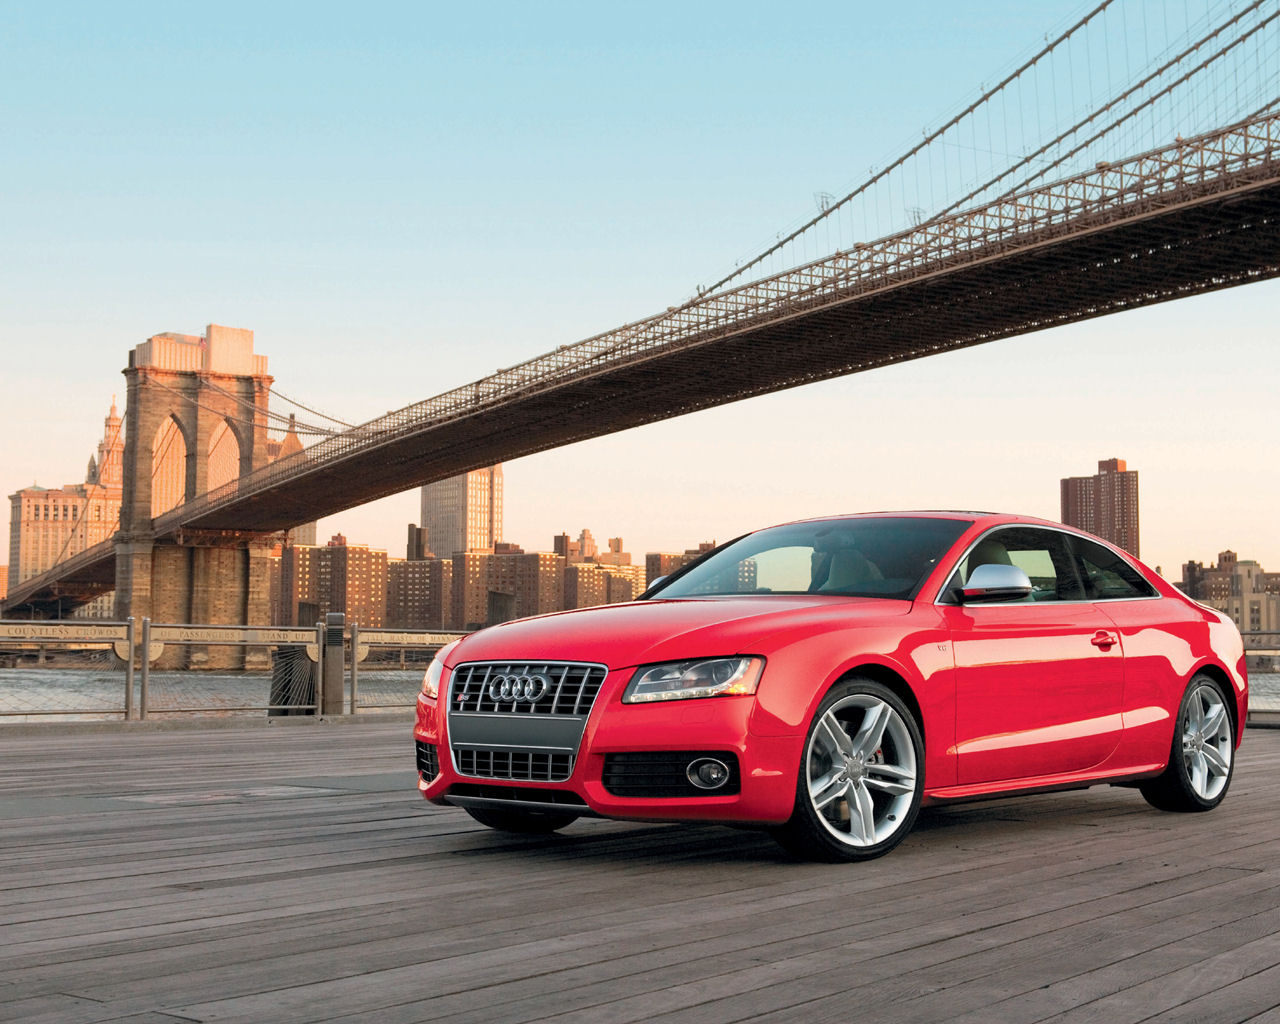 1280x1024 - Audi A5 Wallpapers 28